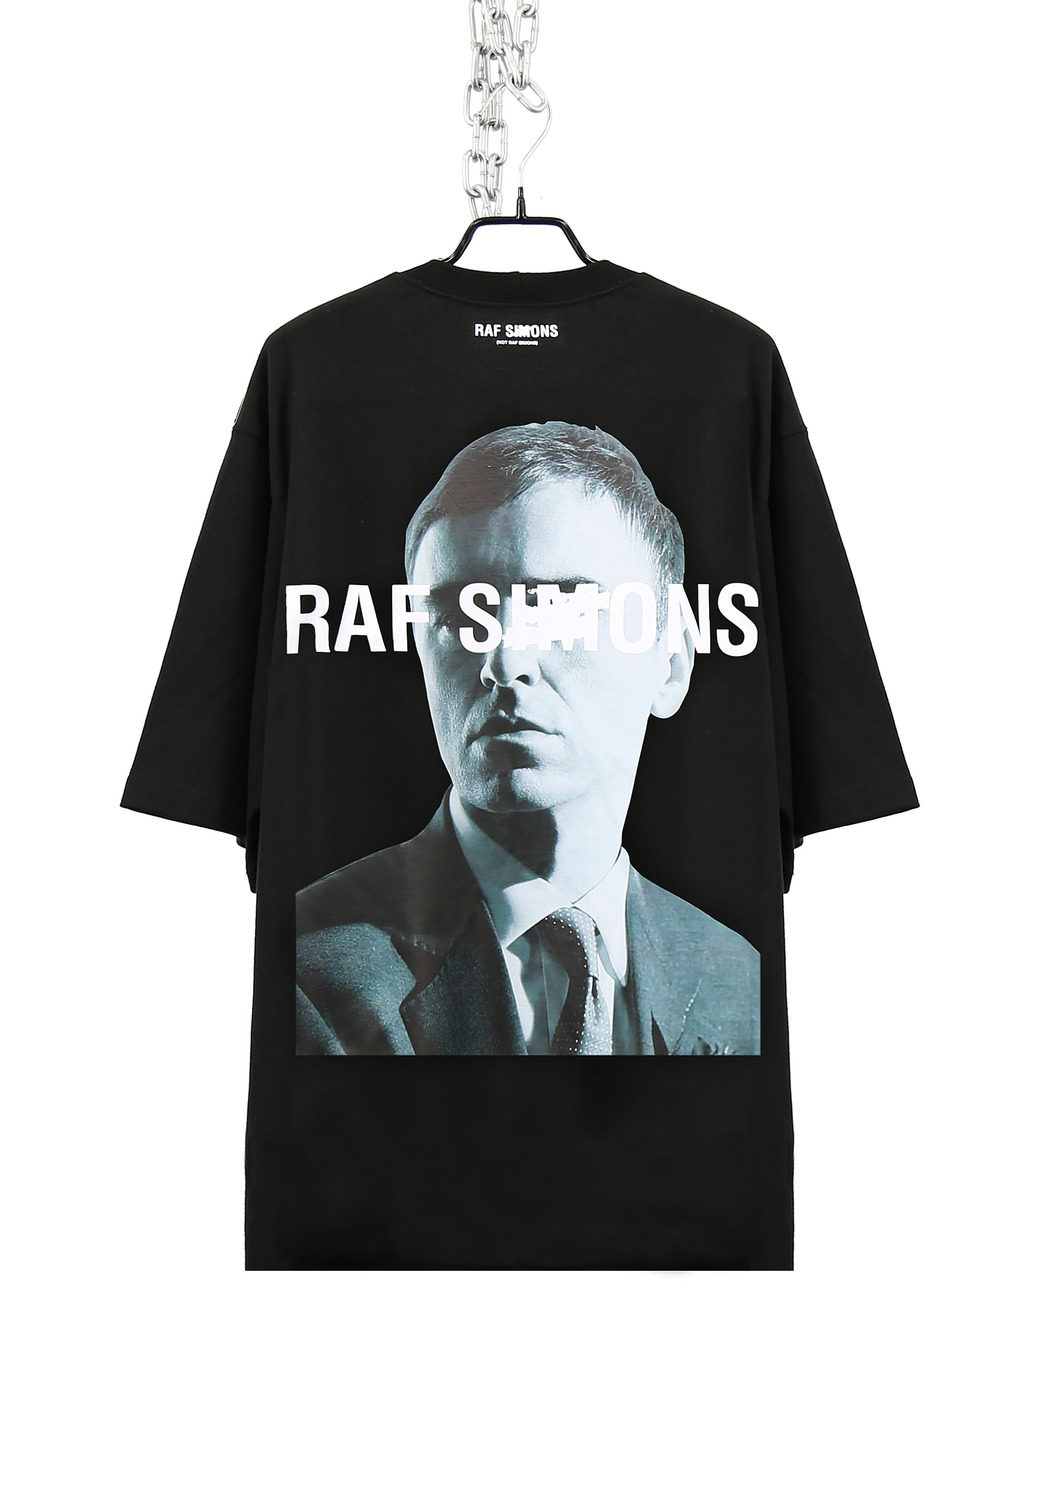 FAKE FACE LONG T-SHIRTS (R*F S*M*NS)